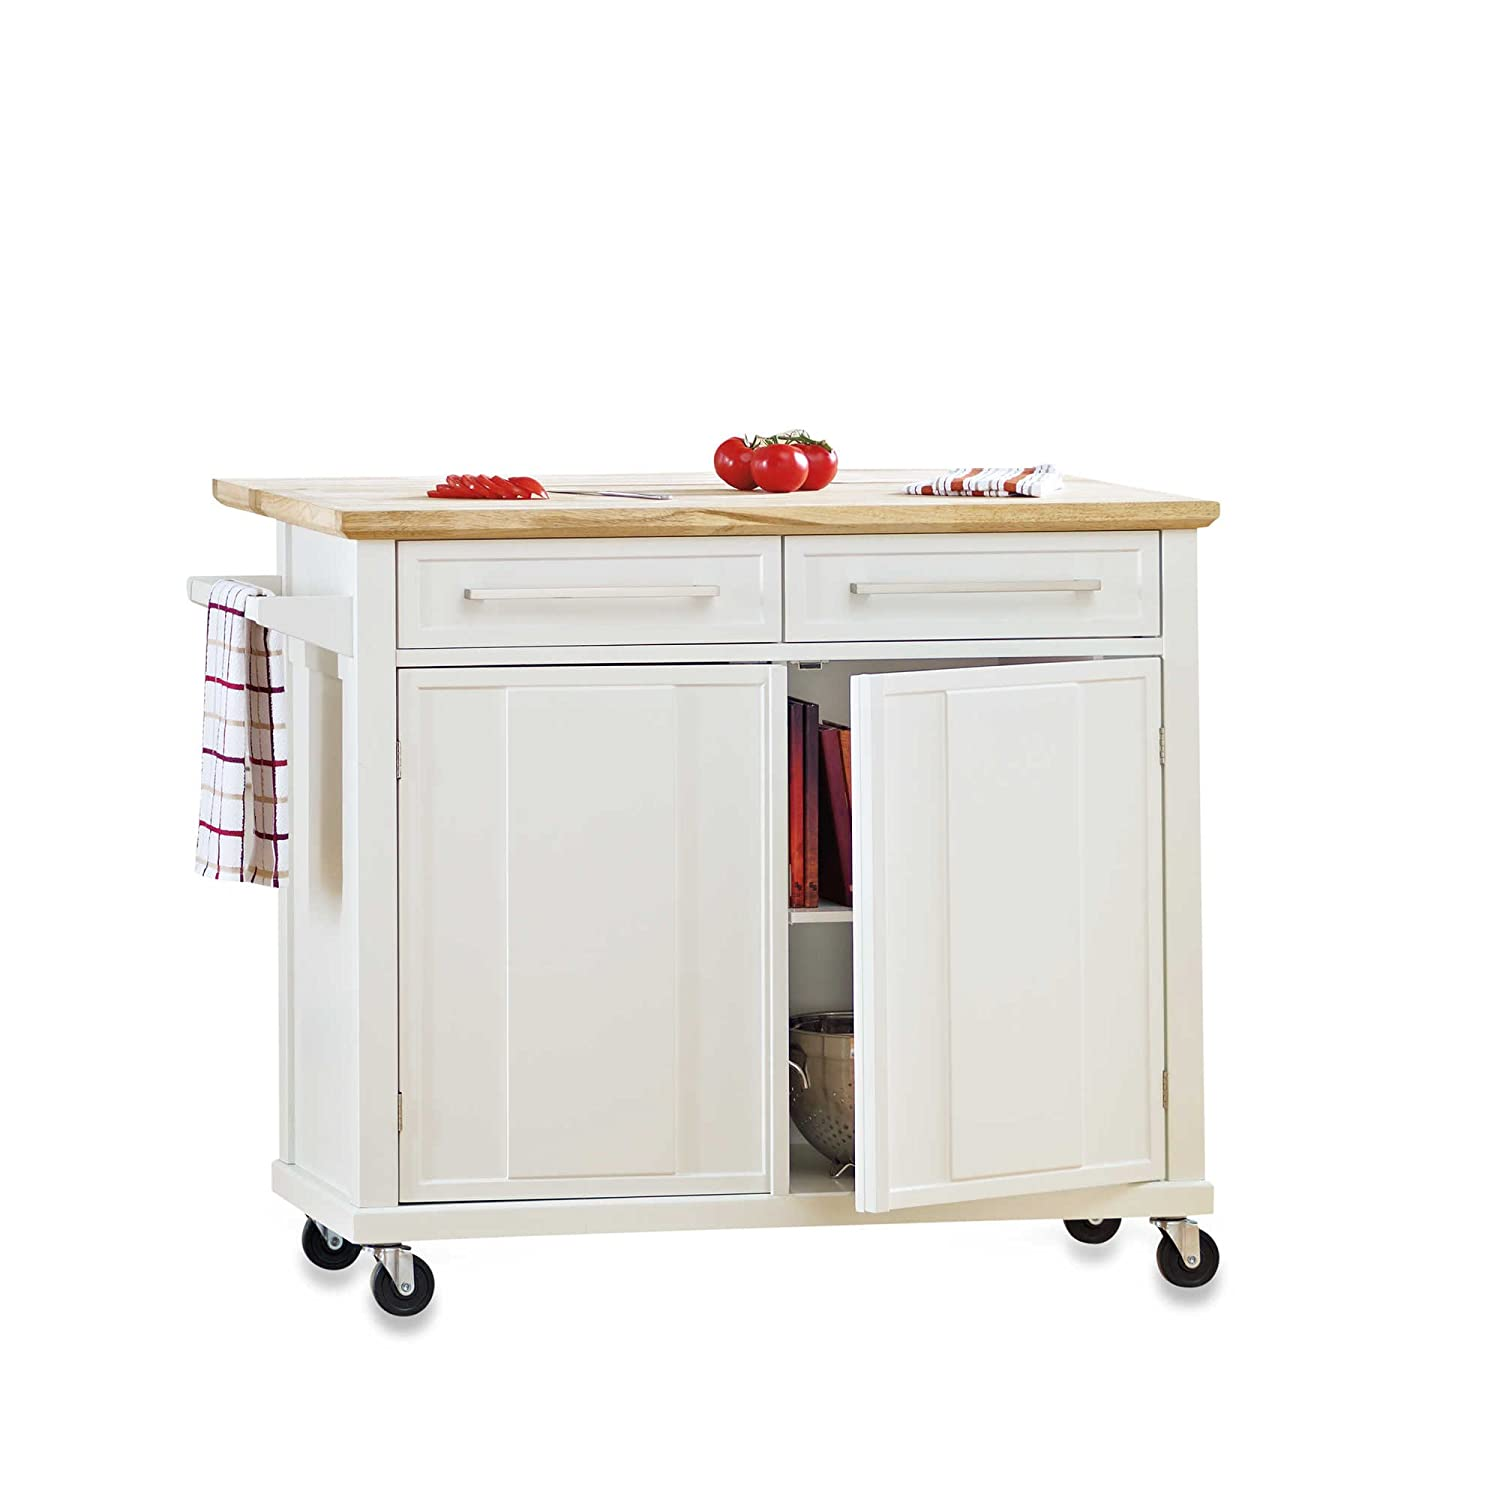 Amazon Style and Function Real Simple Rolling Kitchen Island